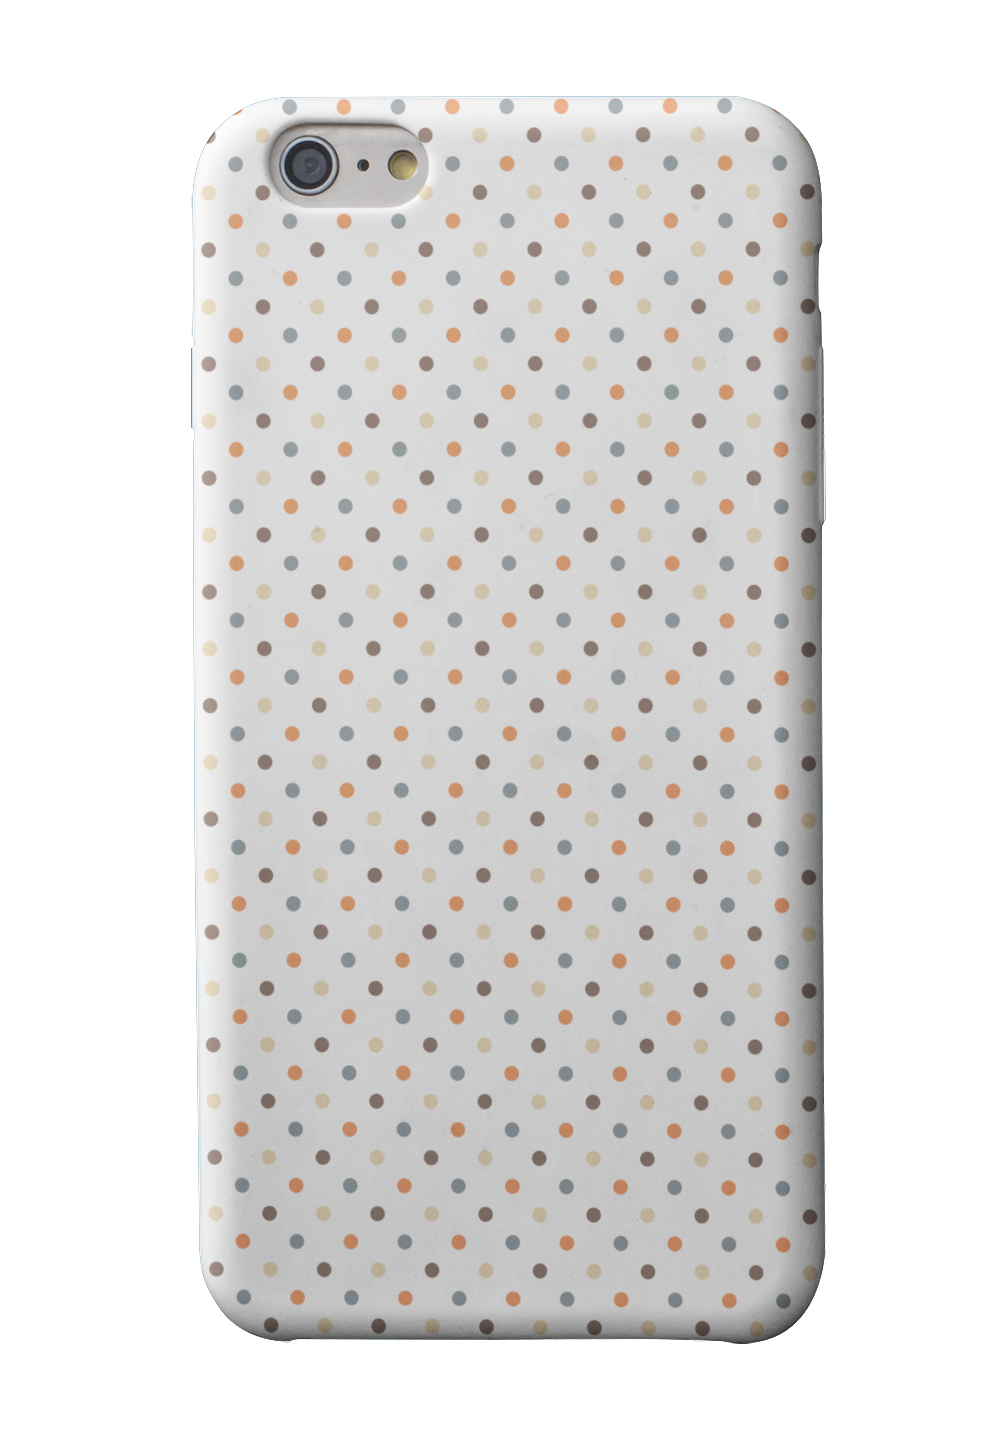 Pattern Phone Case 103 - ateedude